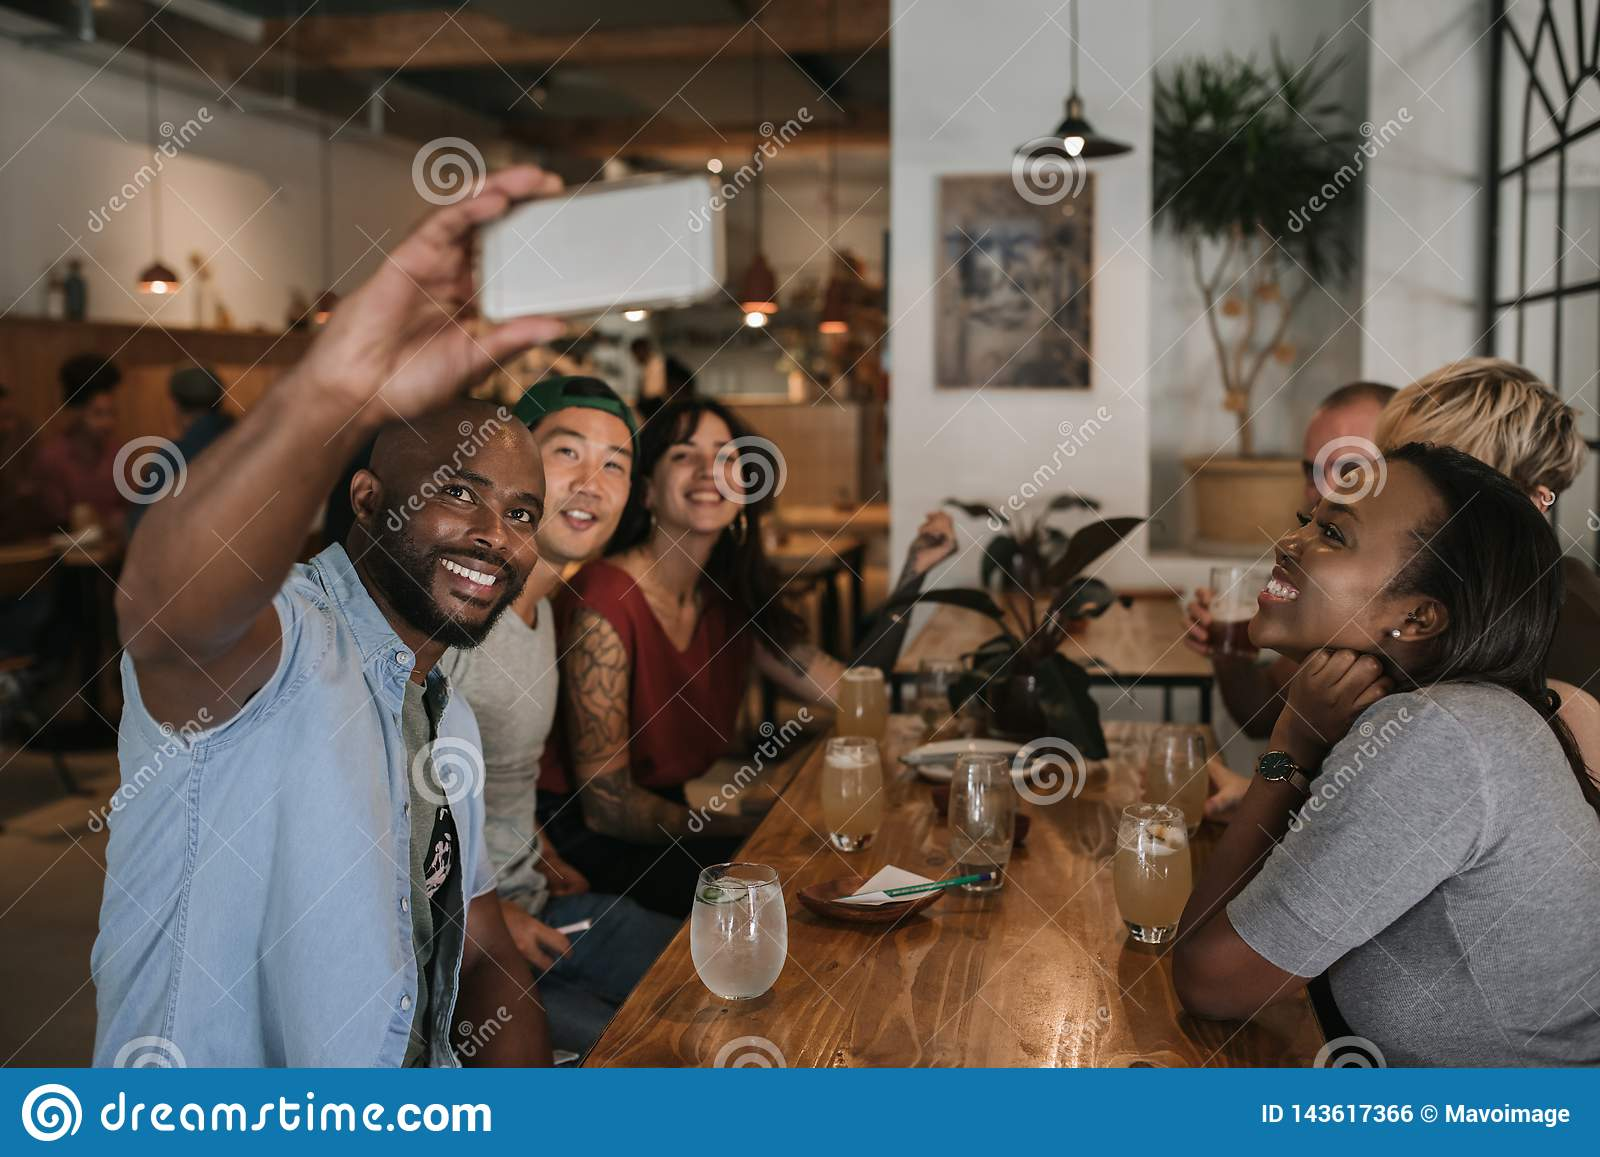 Group of smiling friends taking selfies together in a bar